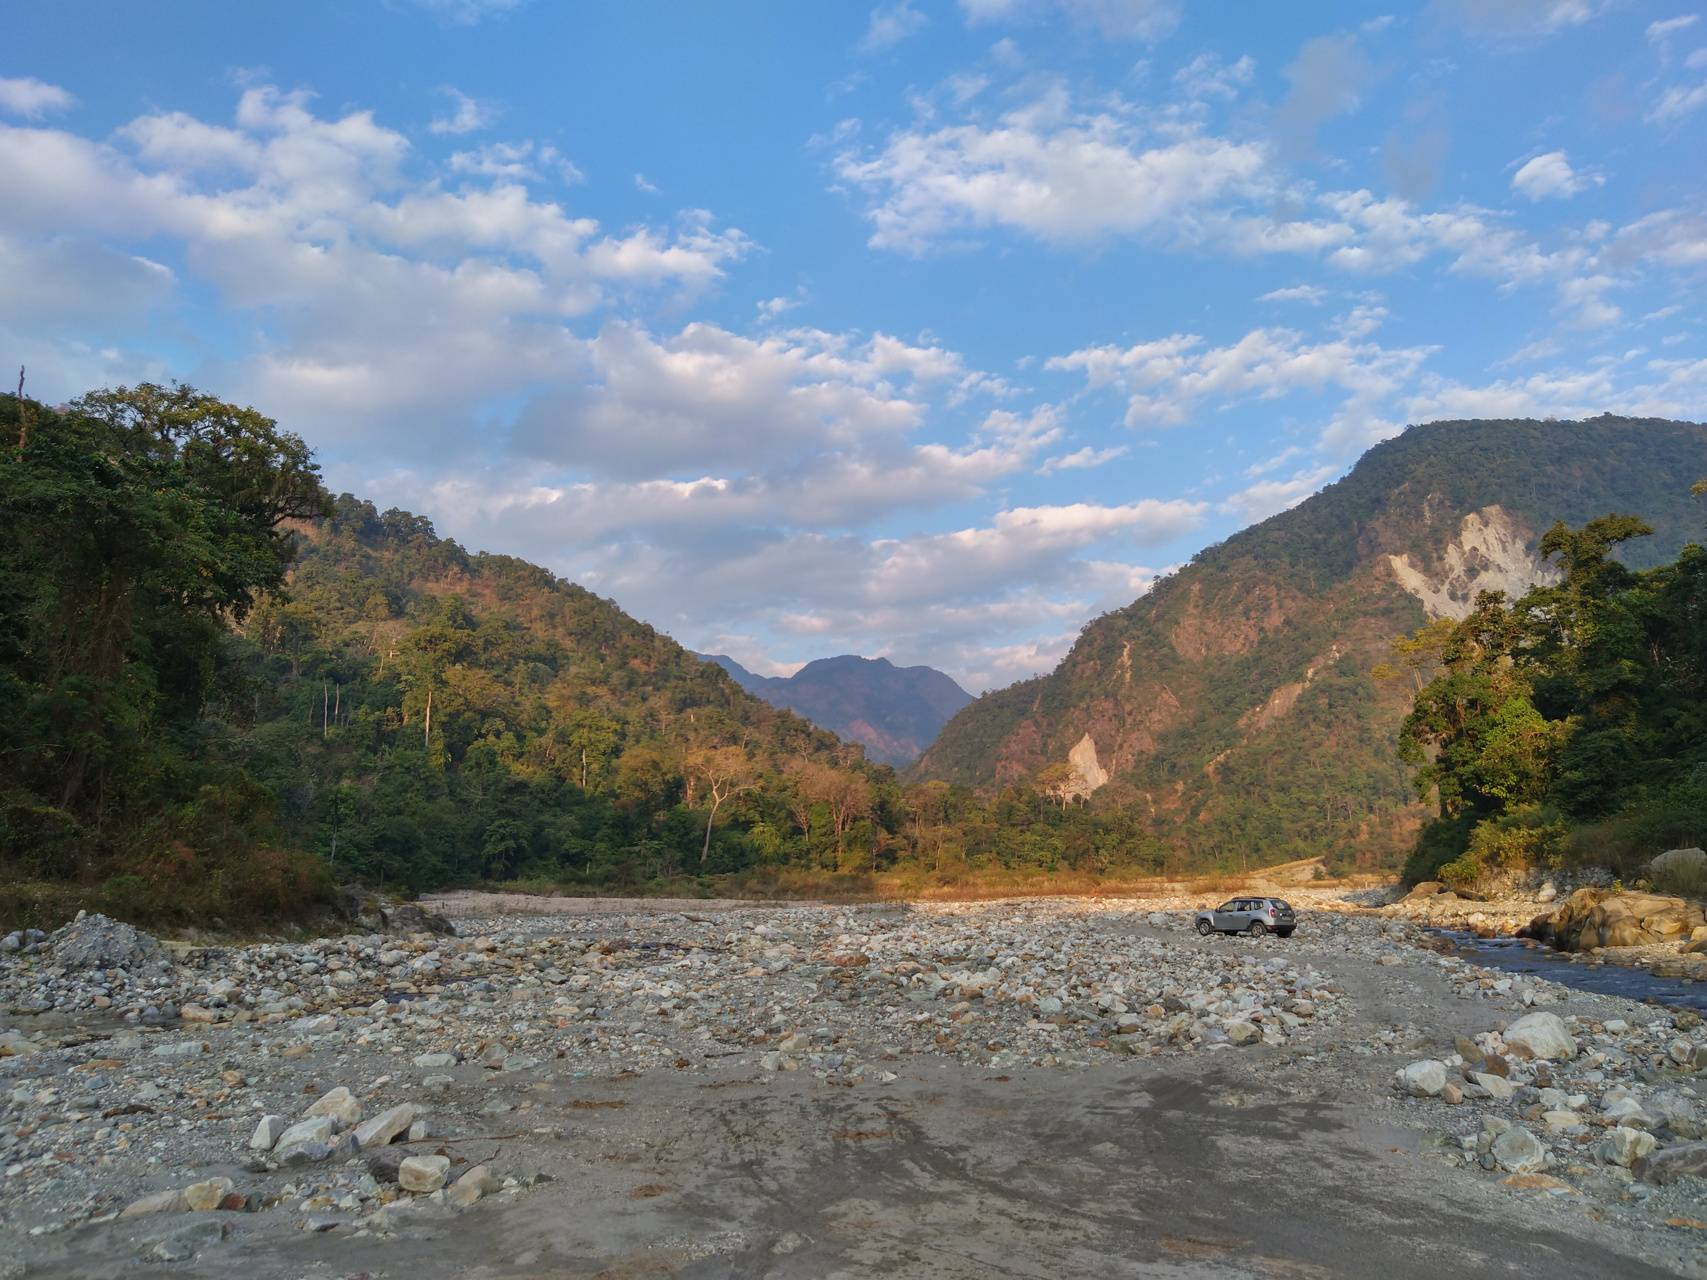 Riverbed view